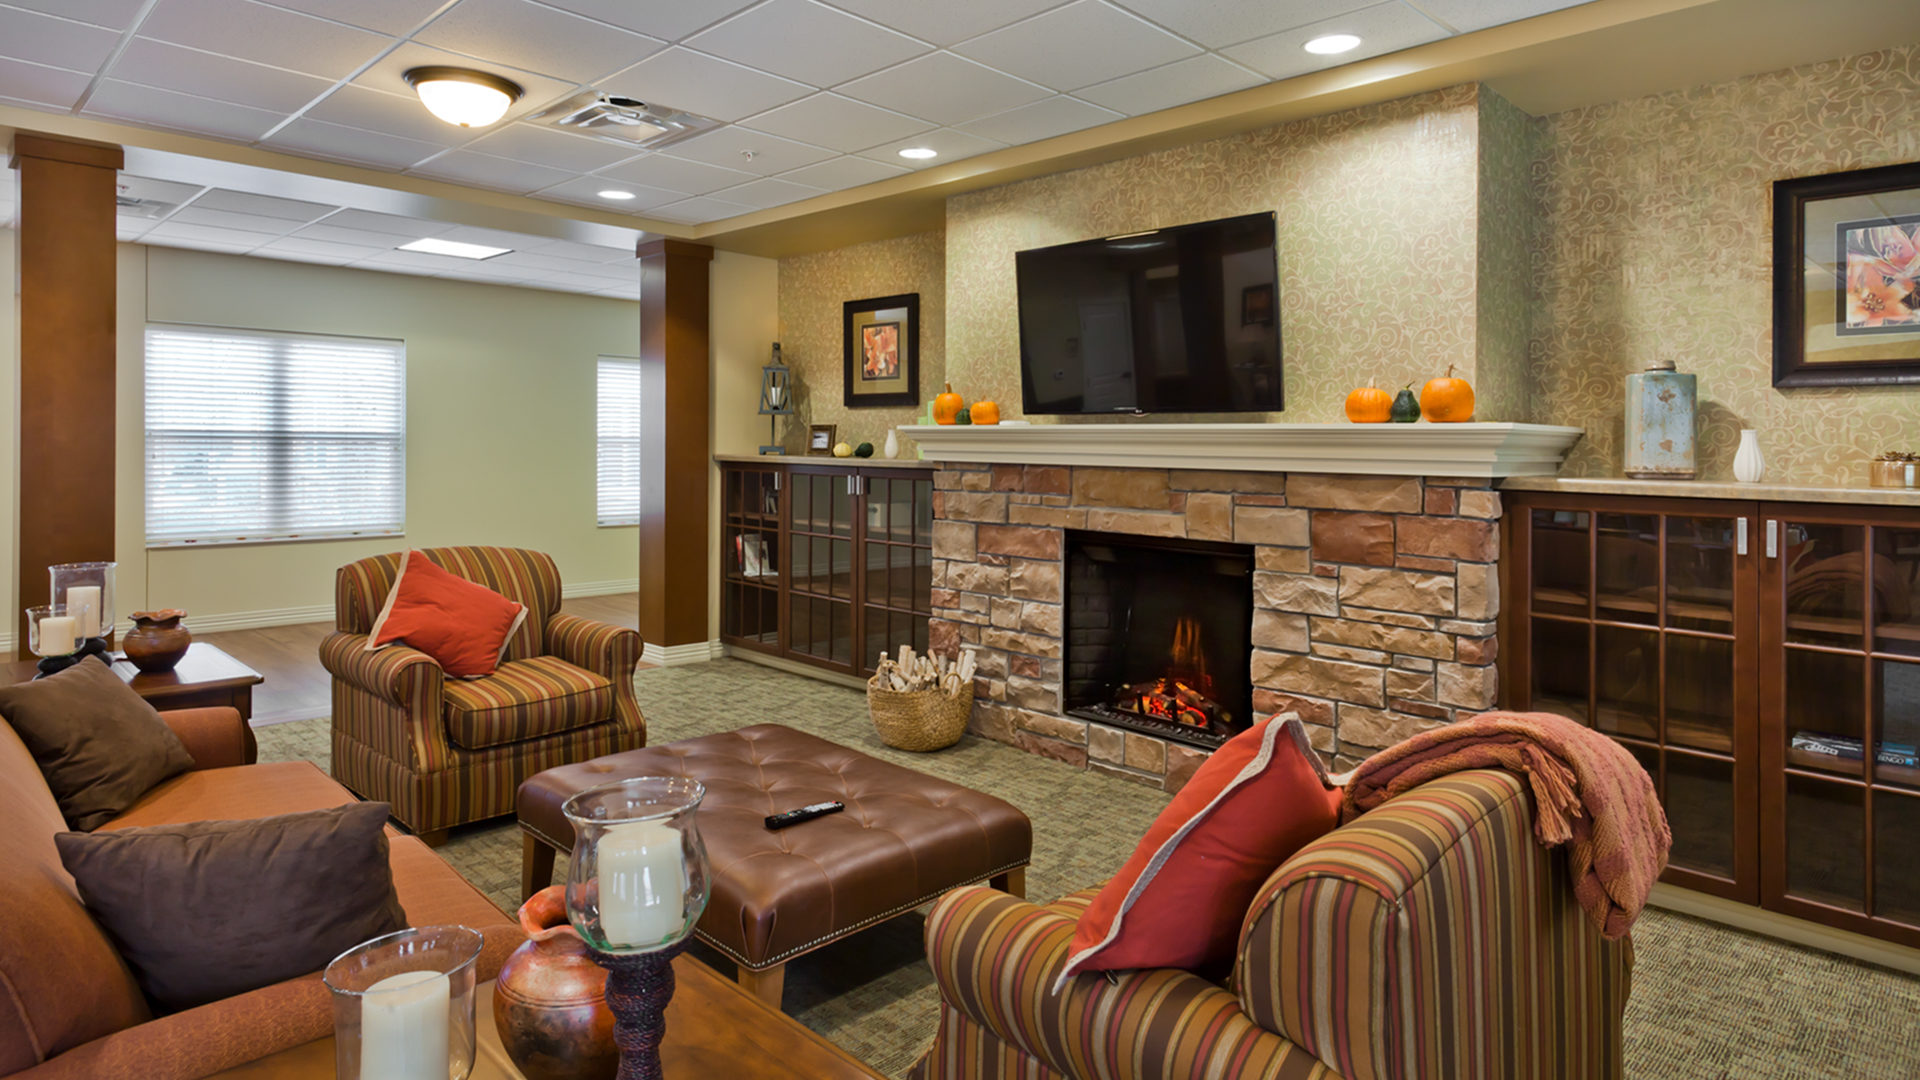 Good Samaritan Society International Falls Community Room with Television and Fireplace